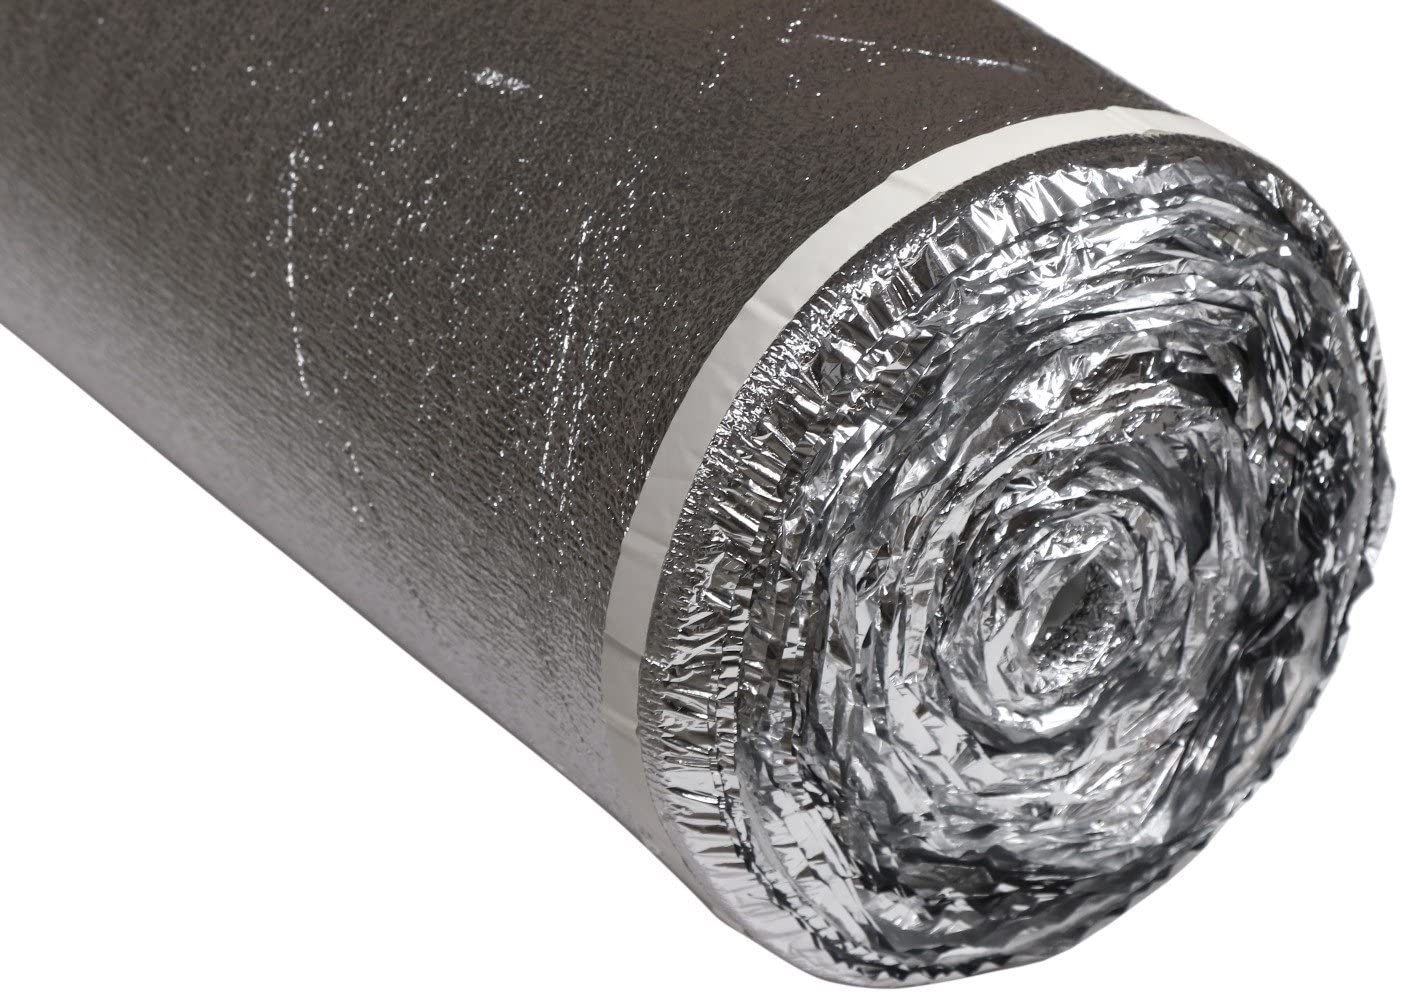 200SQFT AMERIQUE Premium Floor Underlayment Padding with Moisture Barrier & Tape 3-in-1 Heavy Duty Foam 2MM Thick, CHROME SILVER, 200 SF/Roll